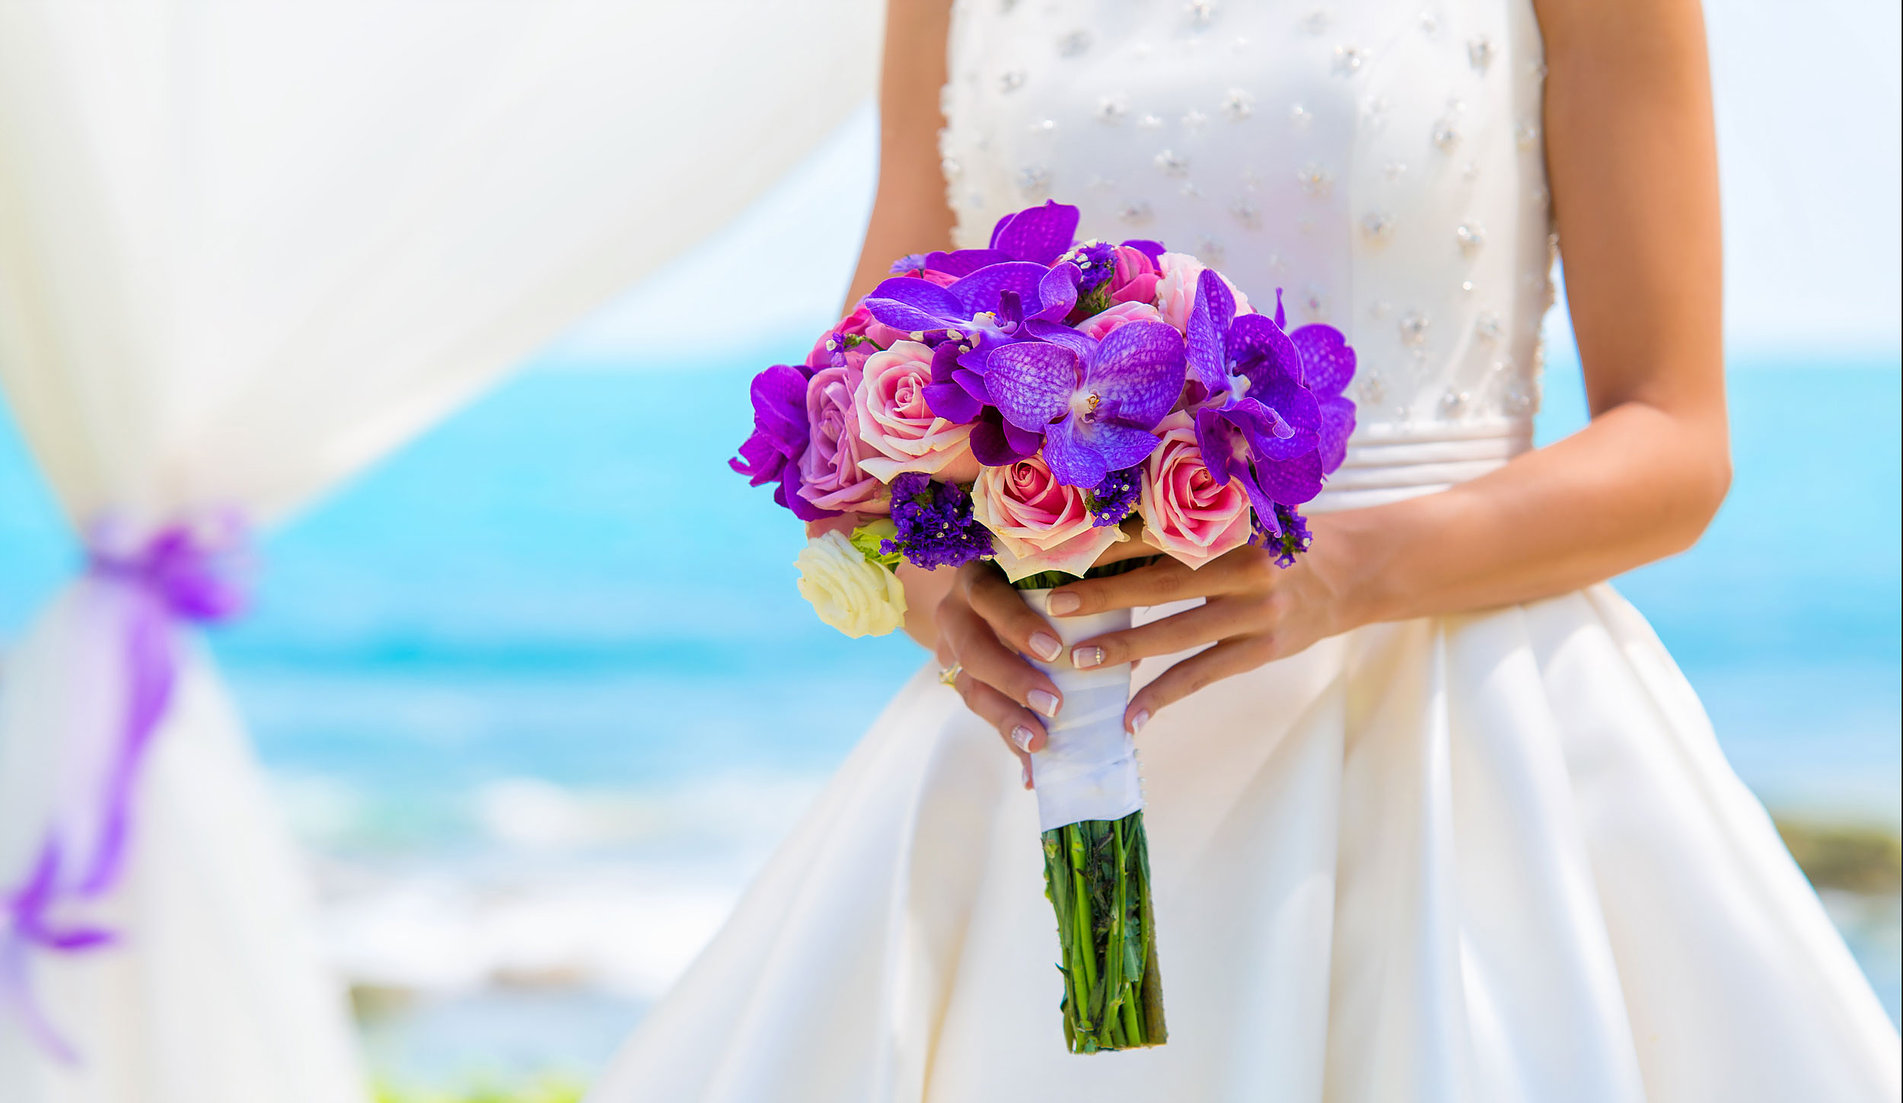 Koh Samui Wedding Packages 展示照片-3